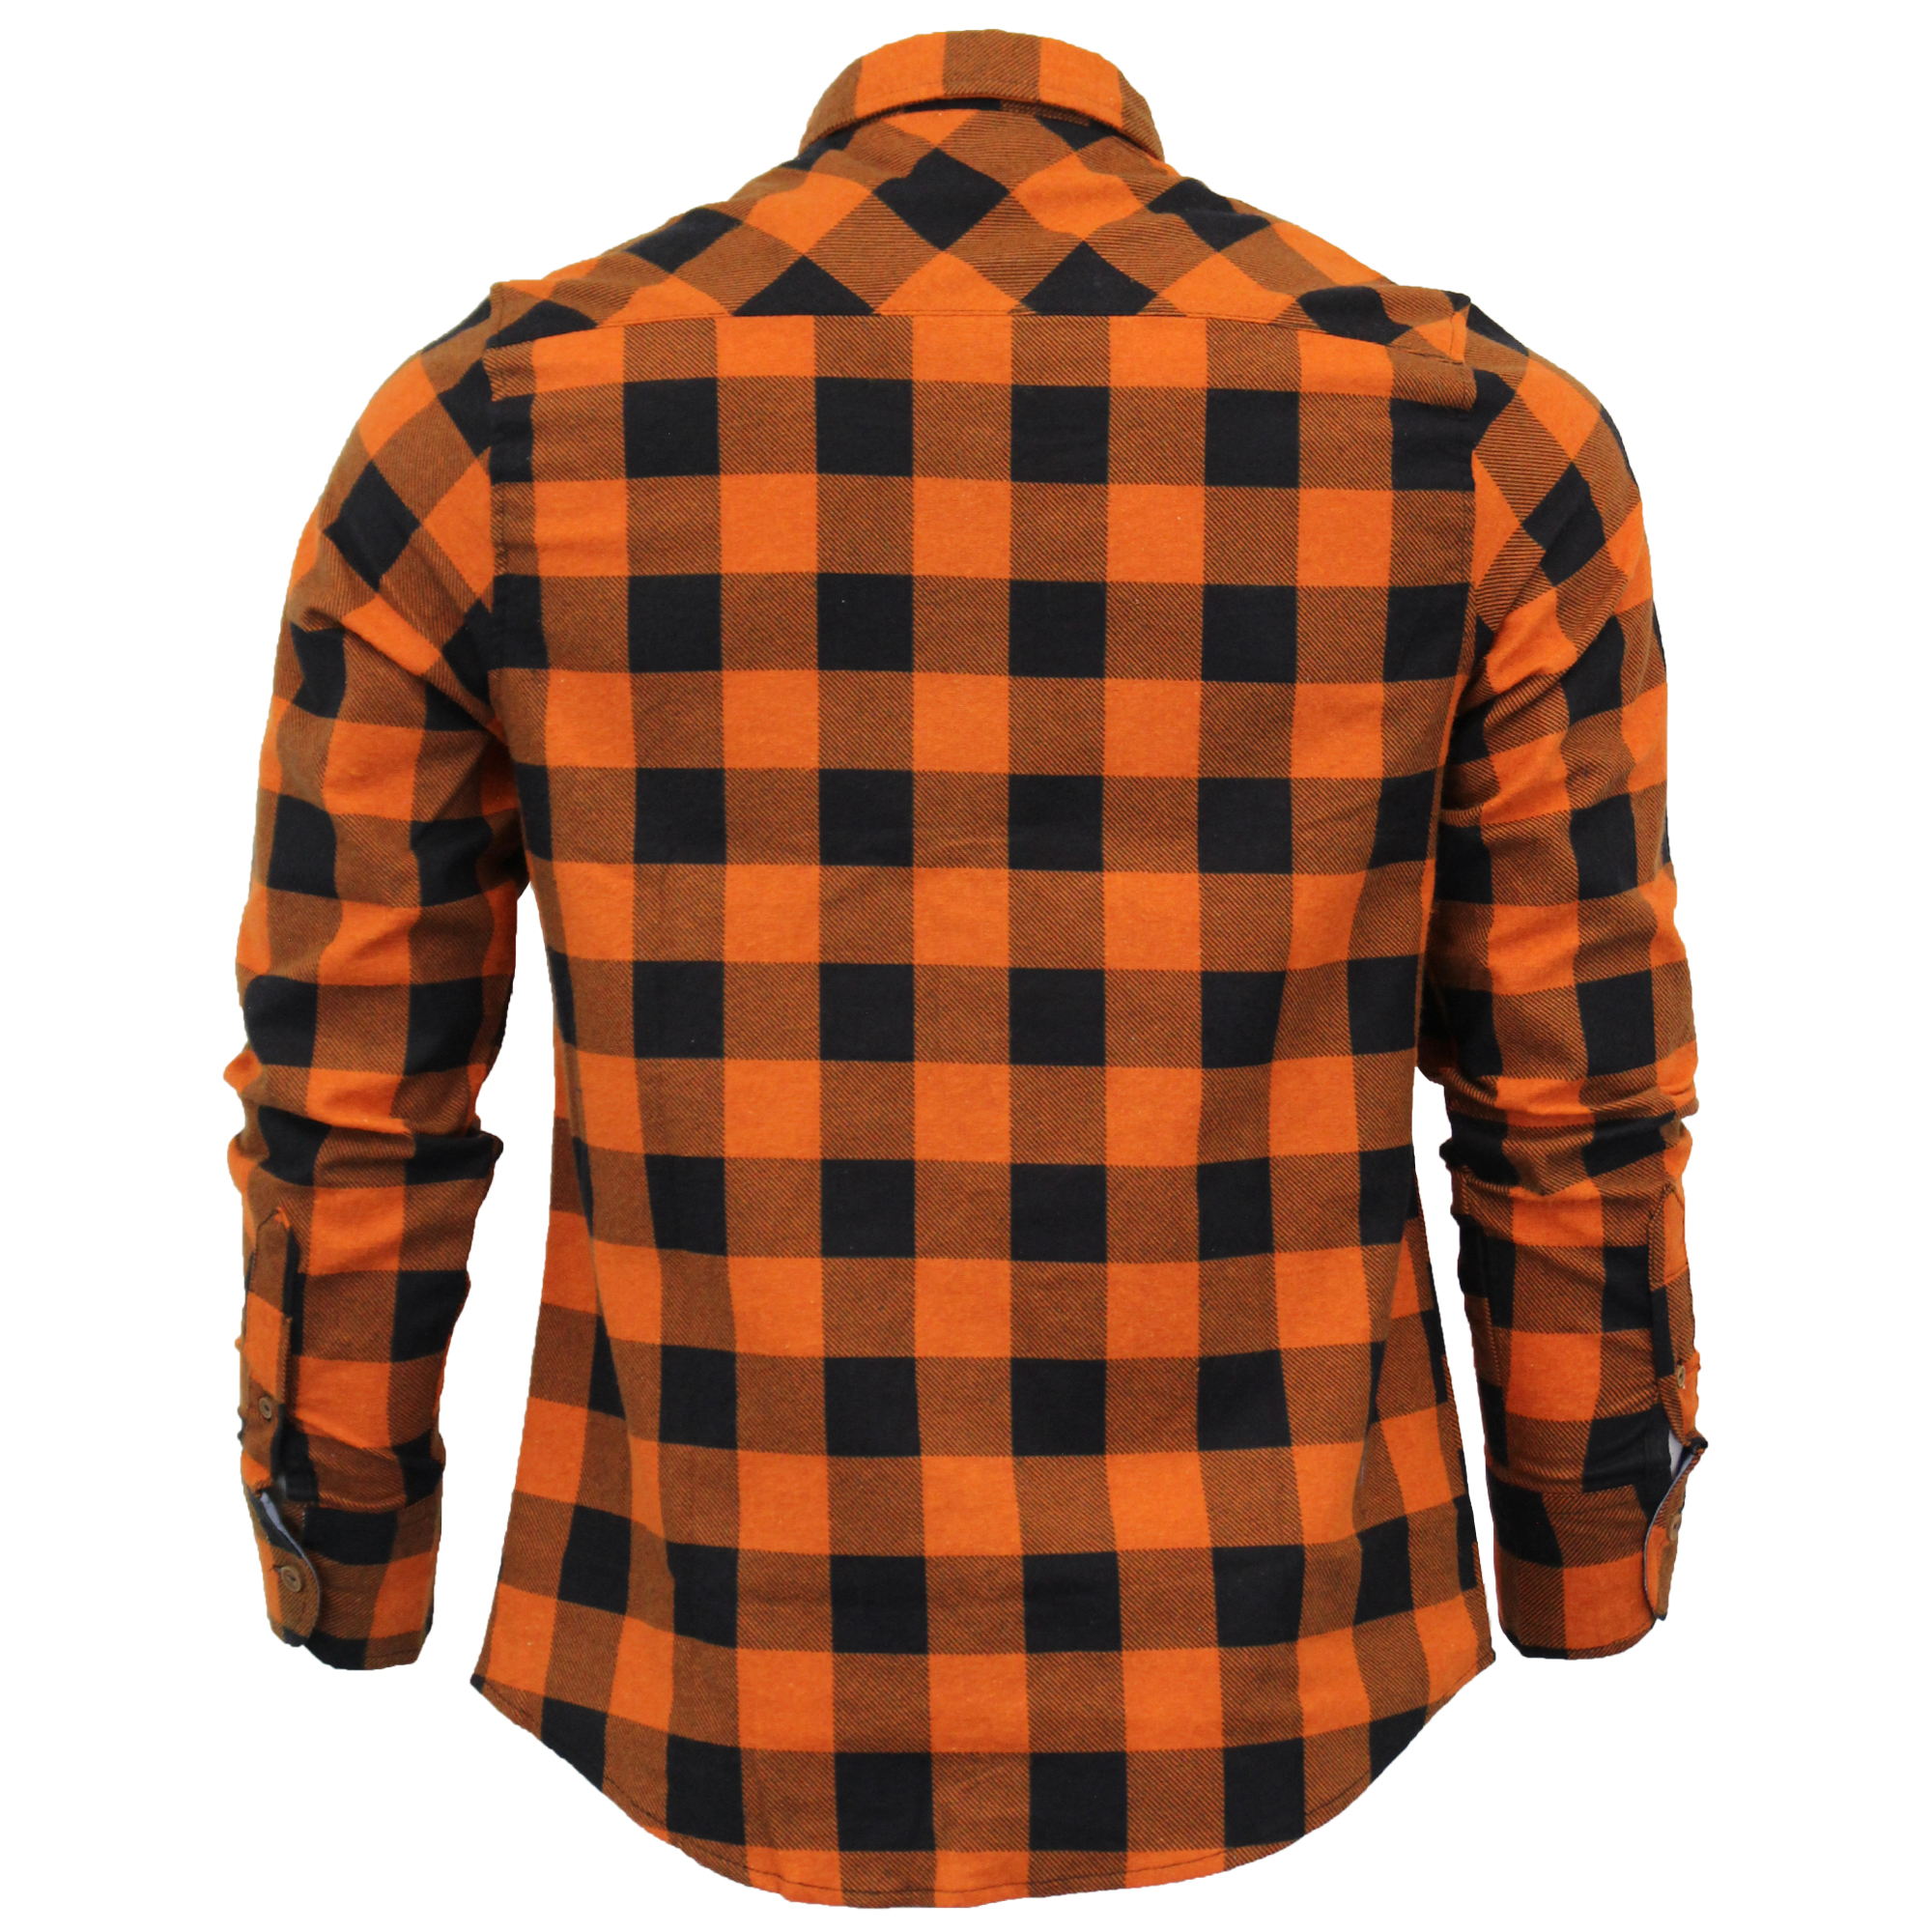 Mens-Checked-Tartan-Long-Sleeved-Collared-Shirt-By-Brave-Soul miniatuur 15